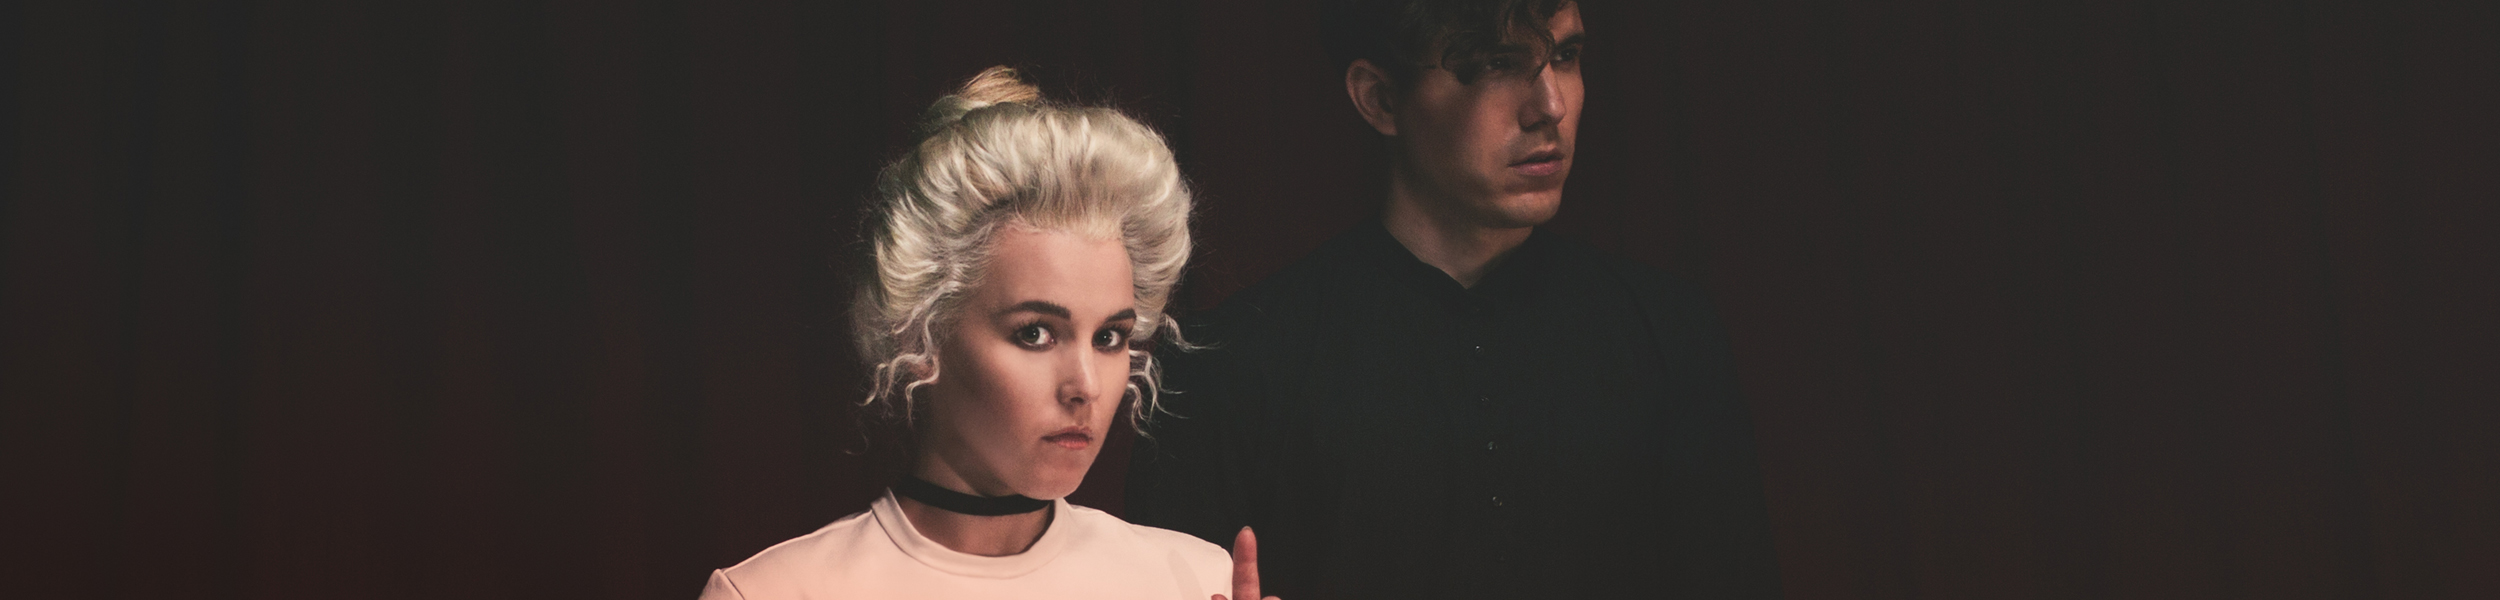 Purity Ring - Purity Ring Announce January Tour and 'Belispeak II feat. Danny Brown'